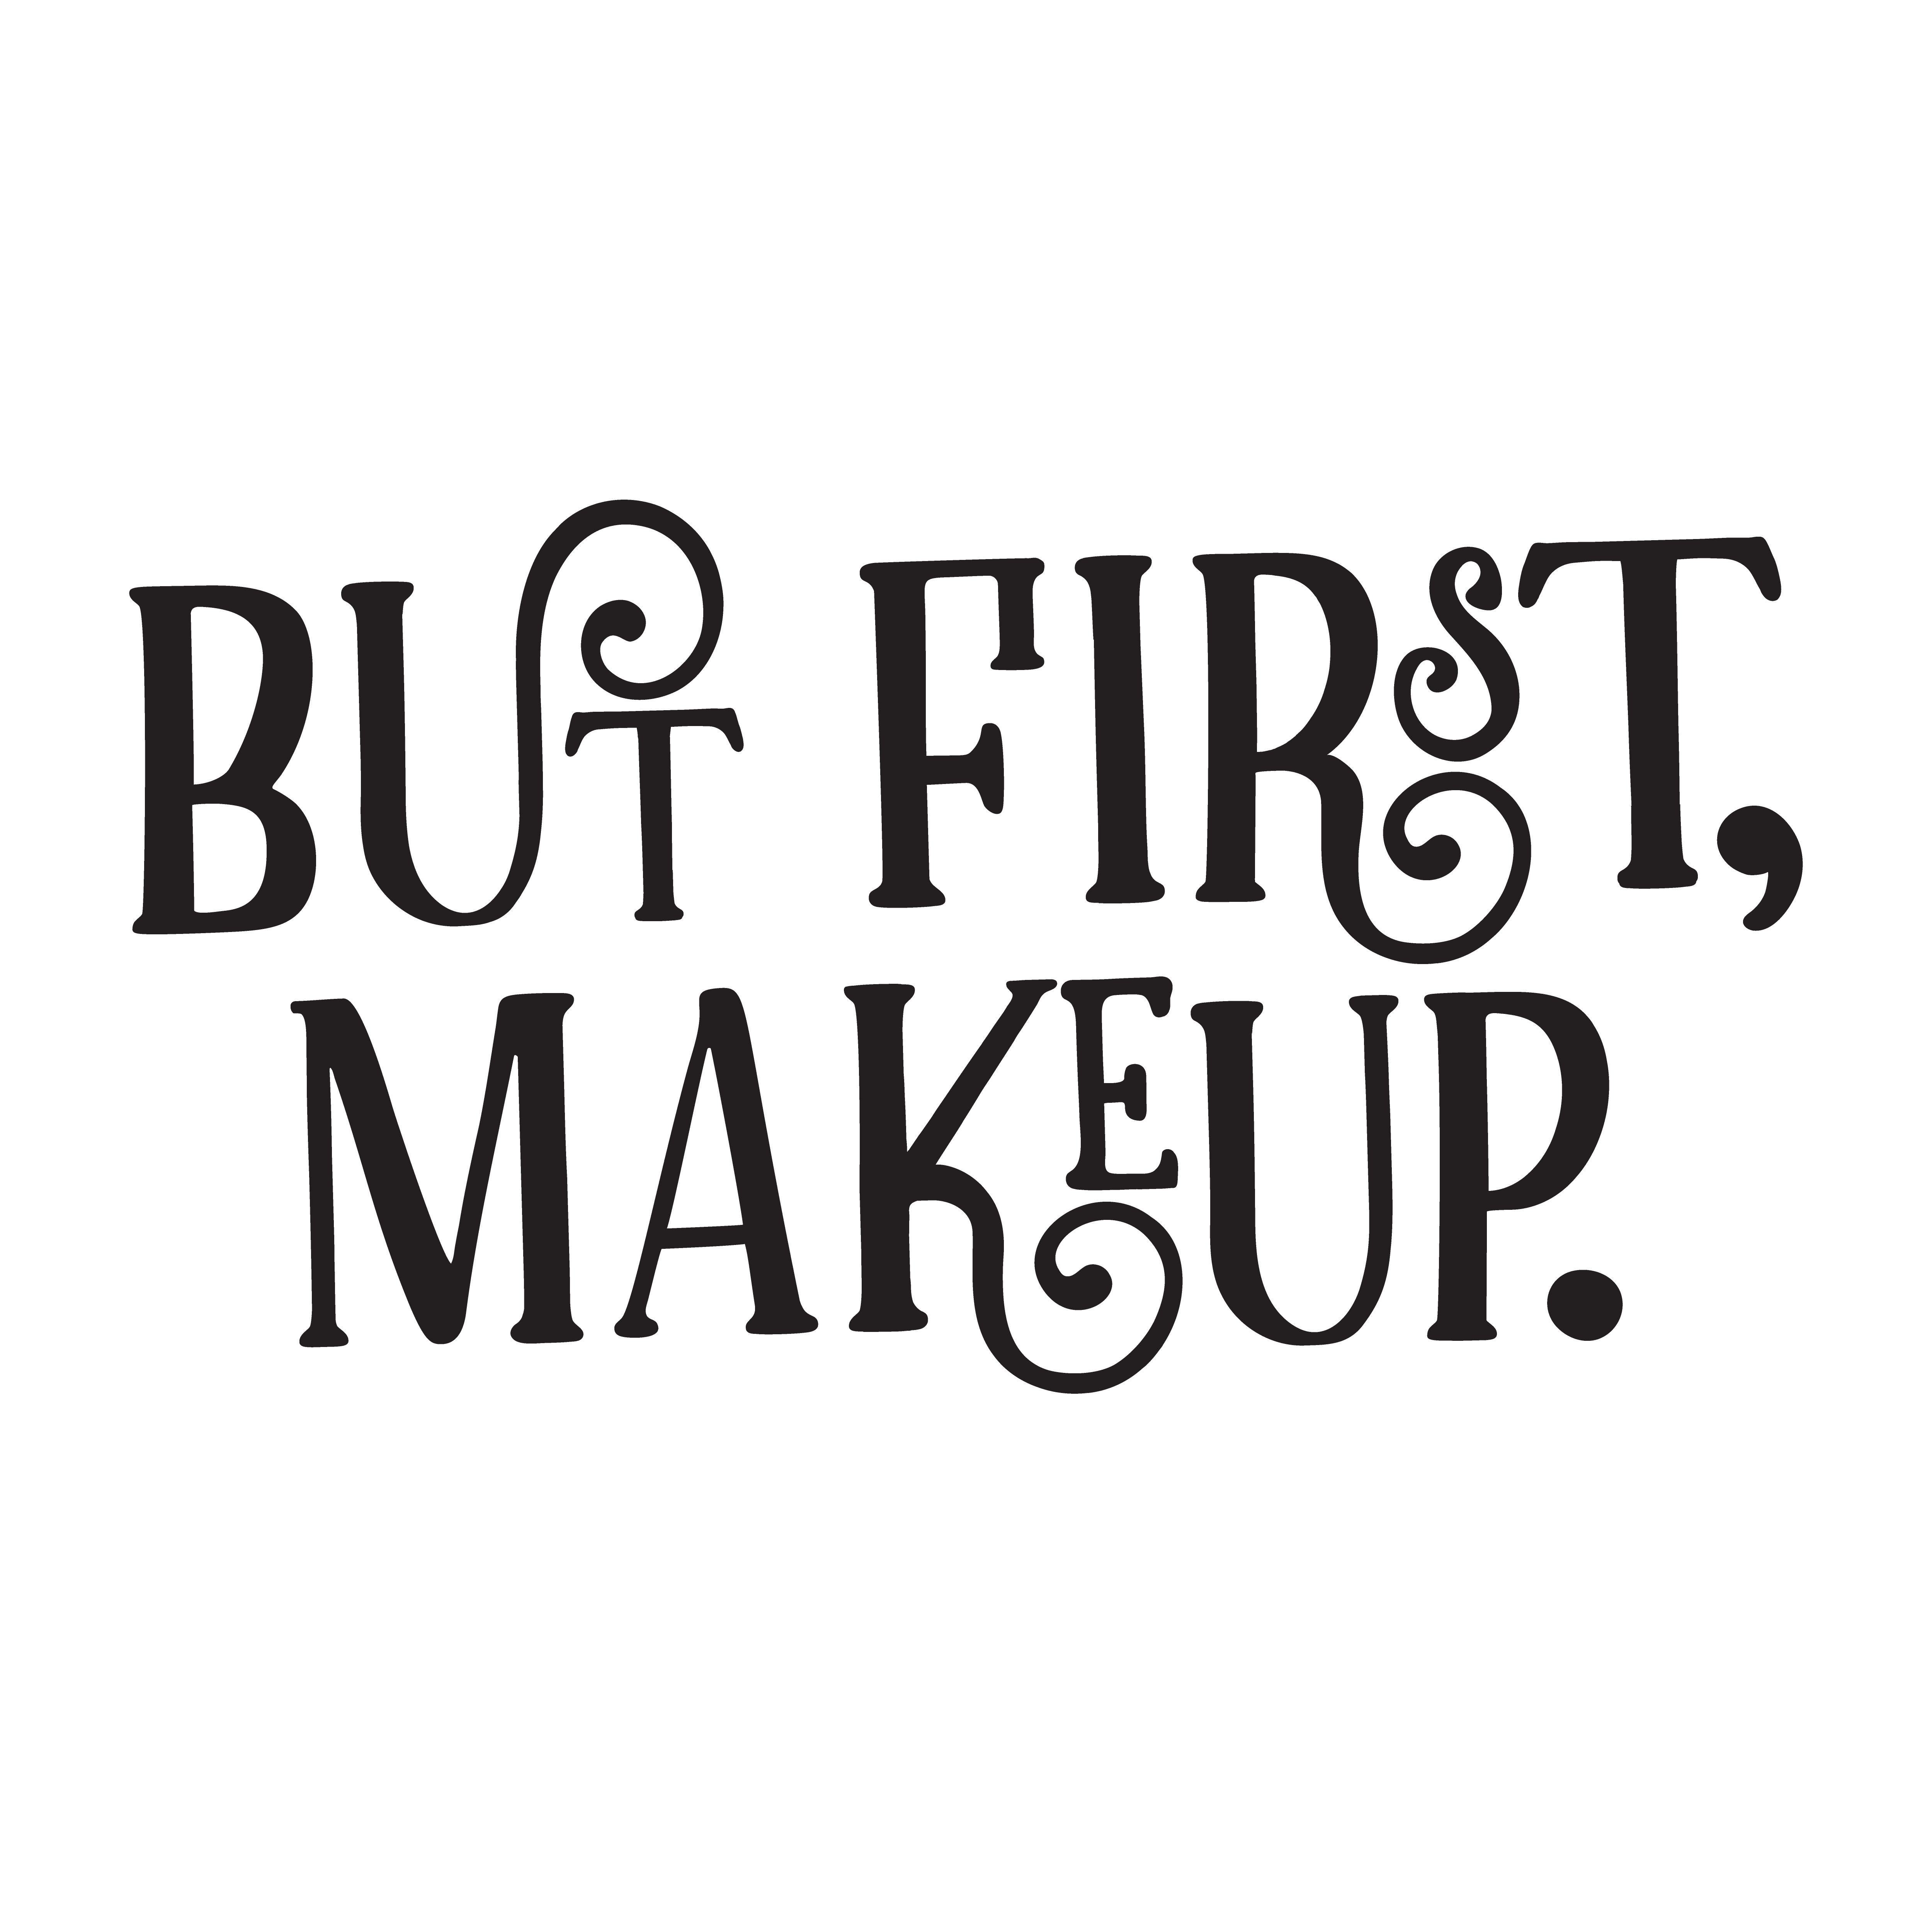 Makeup svg #6, Download drawings